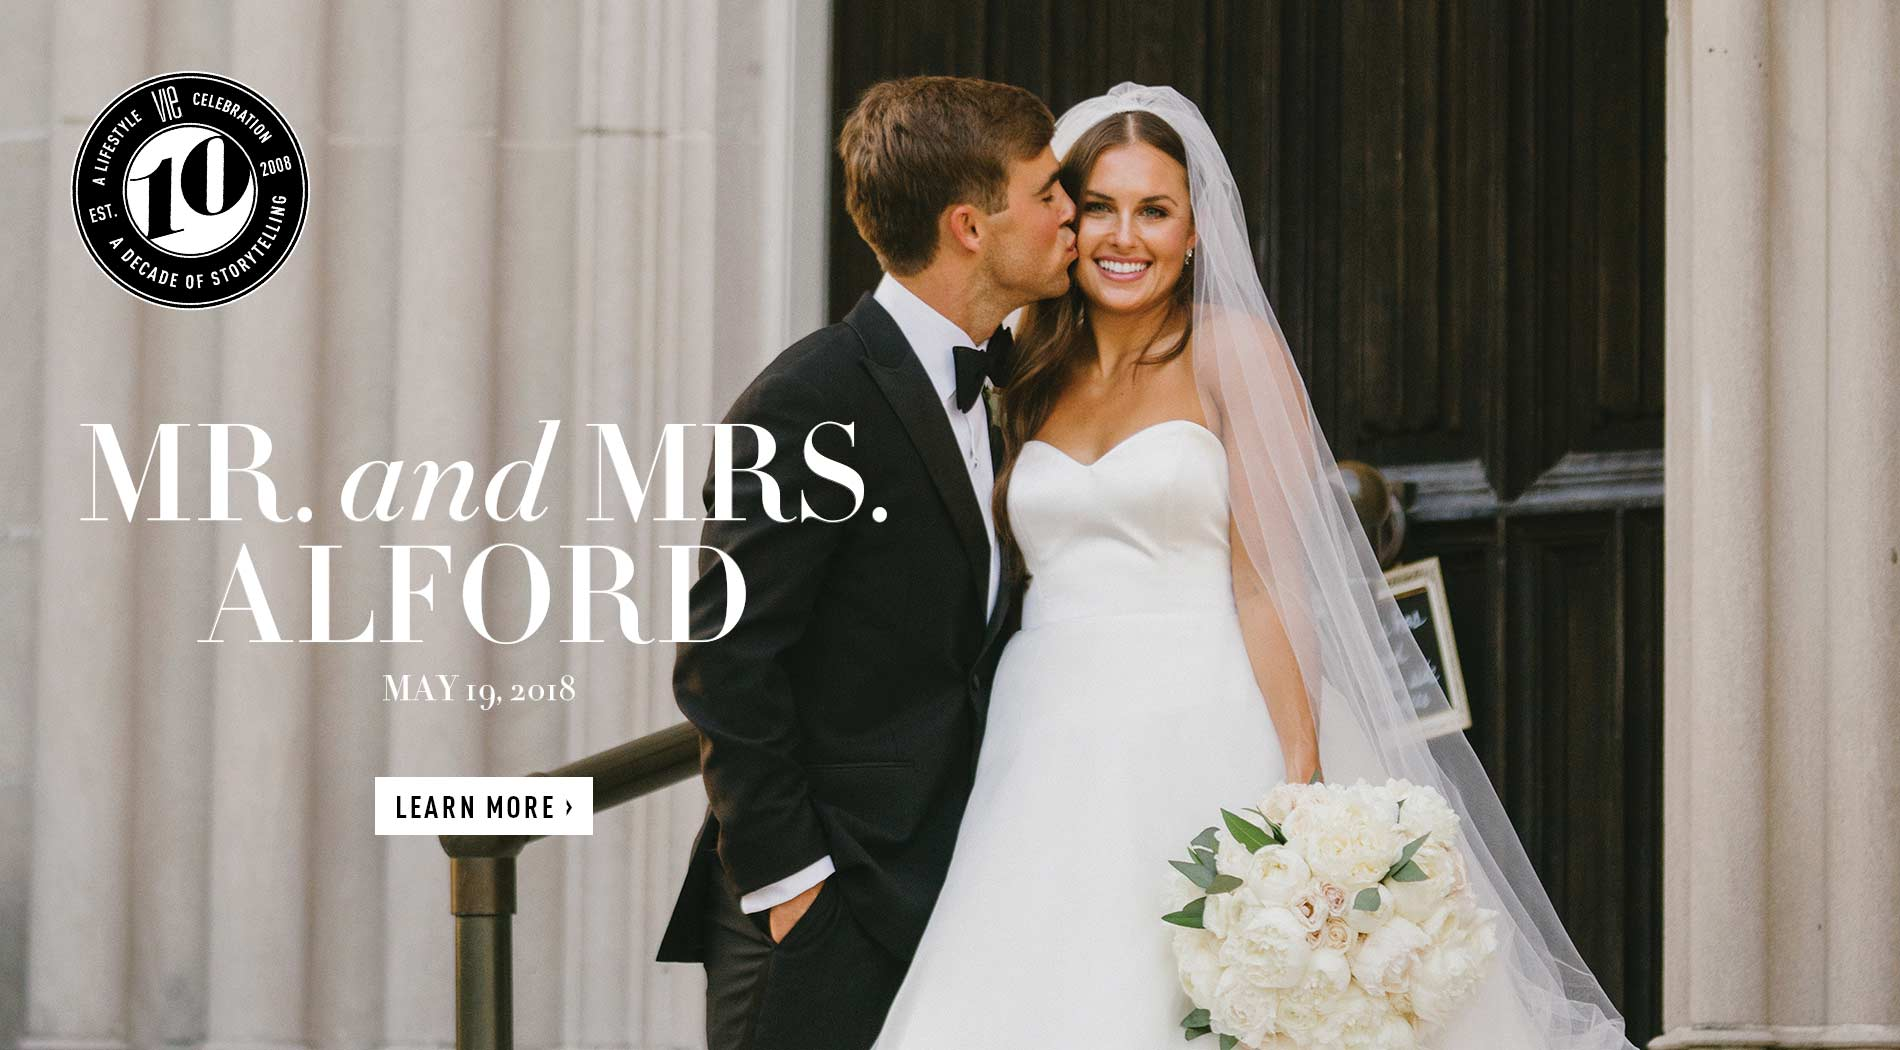 VIE Magazine - The Goodness Issue - November 2018 - Ellie Romair - Alford Wedding